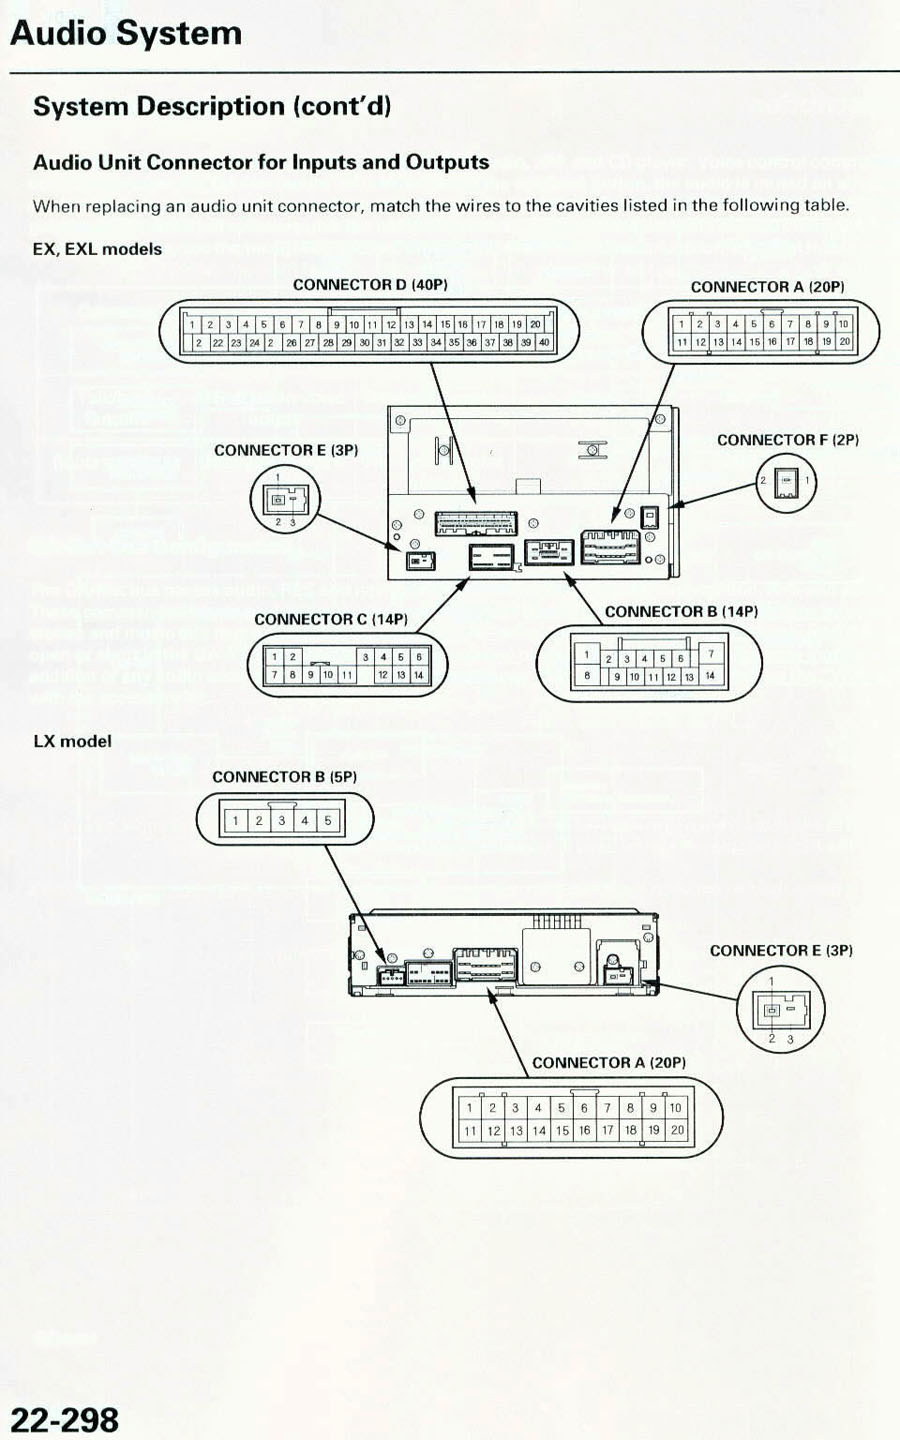 2006 honda pilot stereo wiring diagram file type: jpg audio_connector 2006.jpg (182.0 kb, 22742 ...